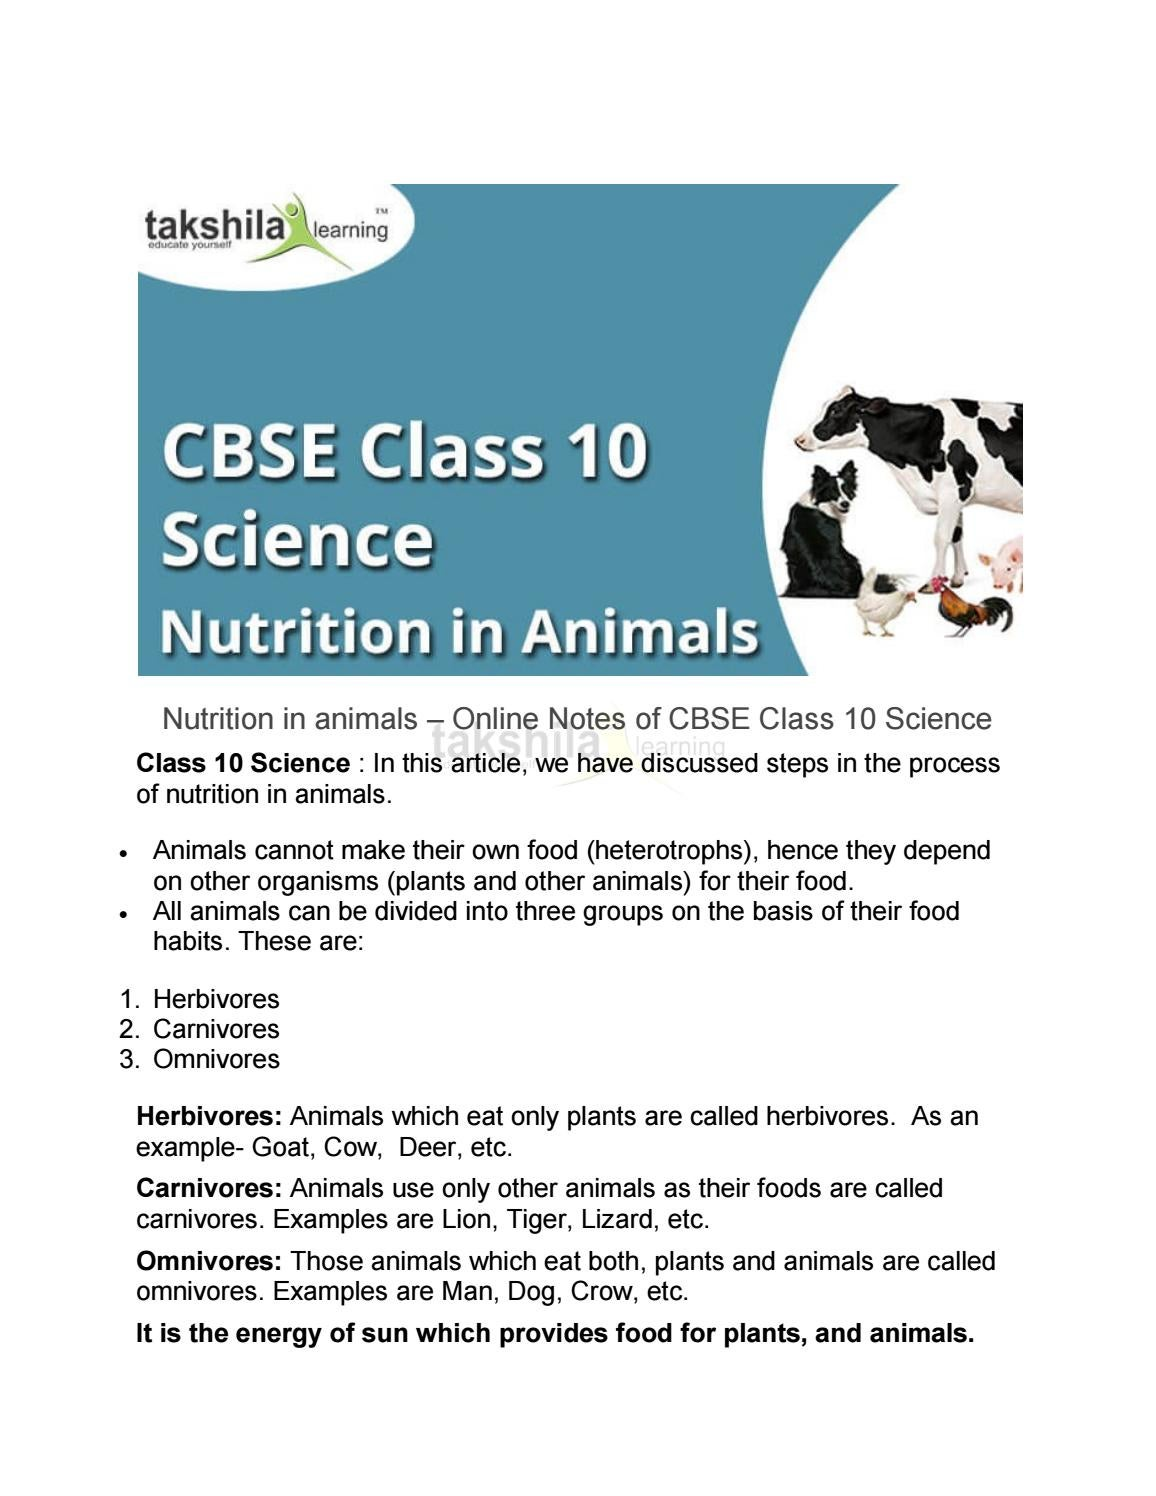 Nutrition In Animals Topic Of Cbse Class 10 Science By Takshila